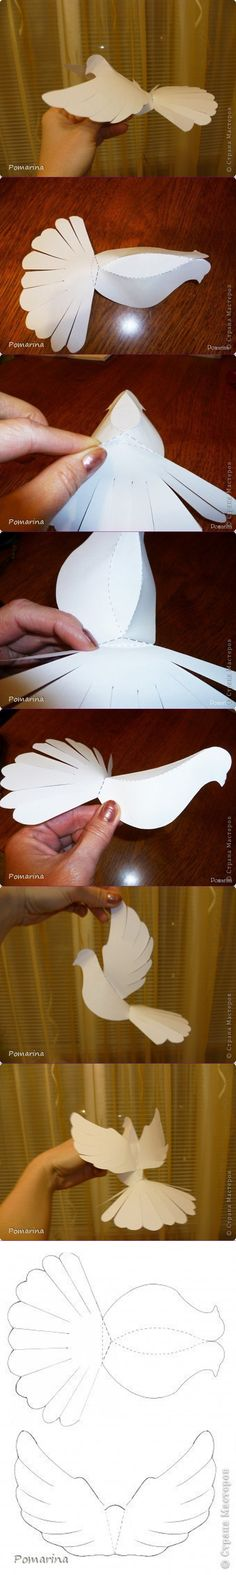 how to DIY 3D Flying Dove | www.FabArtDIY.com LIKE Us on Facebook == https://www.facebook.com/FabArtDIY